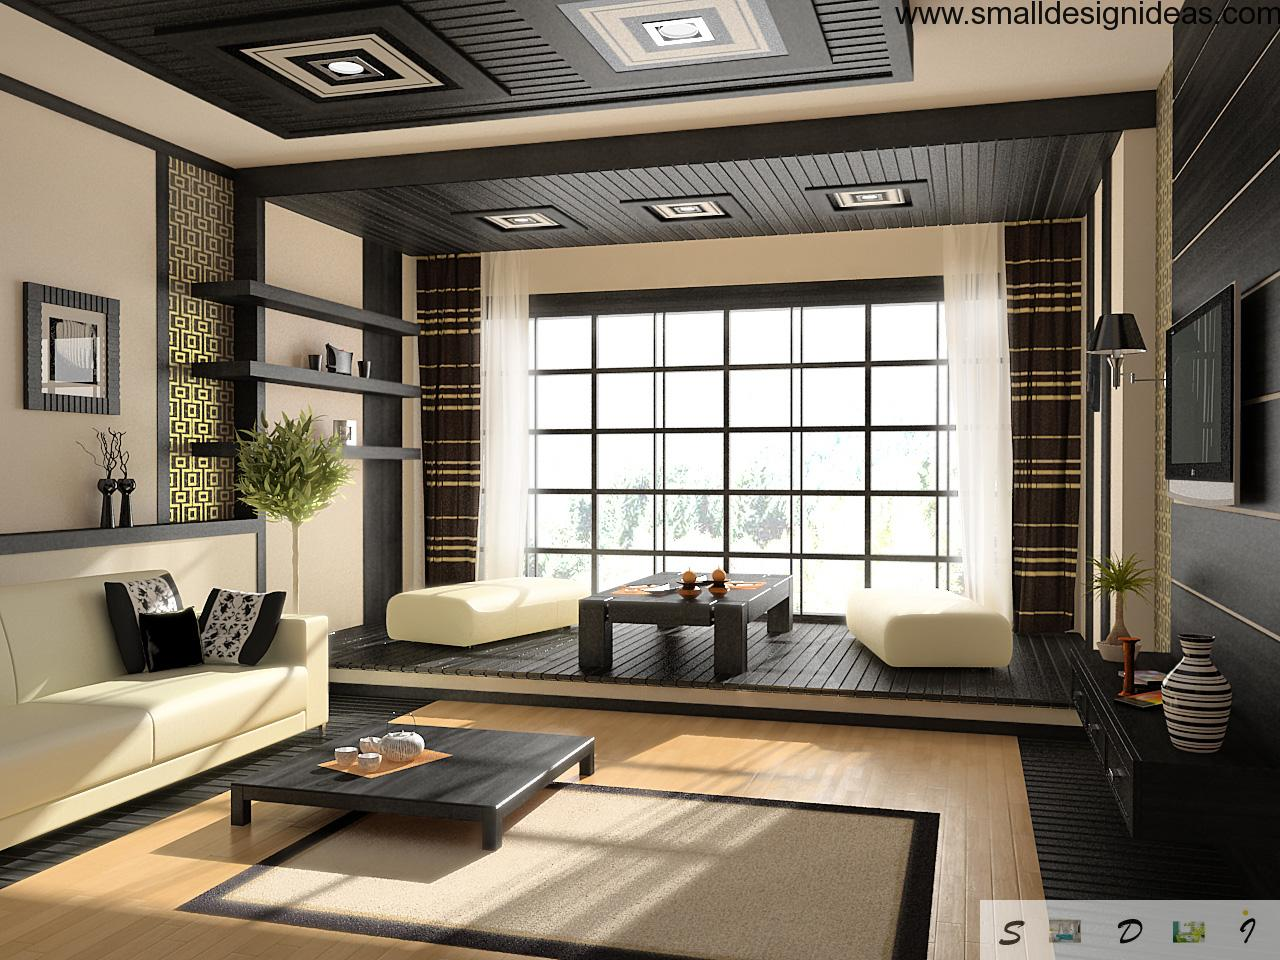 Japanese Traditional Interior Decoration Of The Spaious Light Living Room With Dark Contrasting Elements And Natural